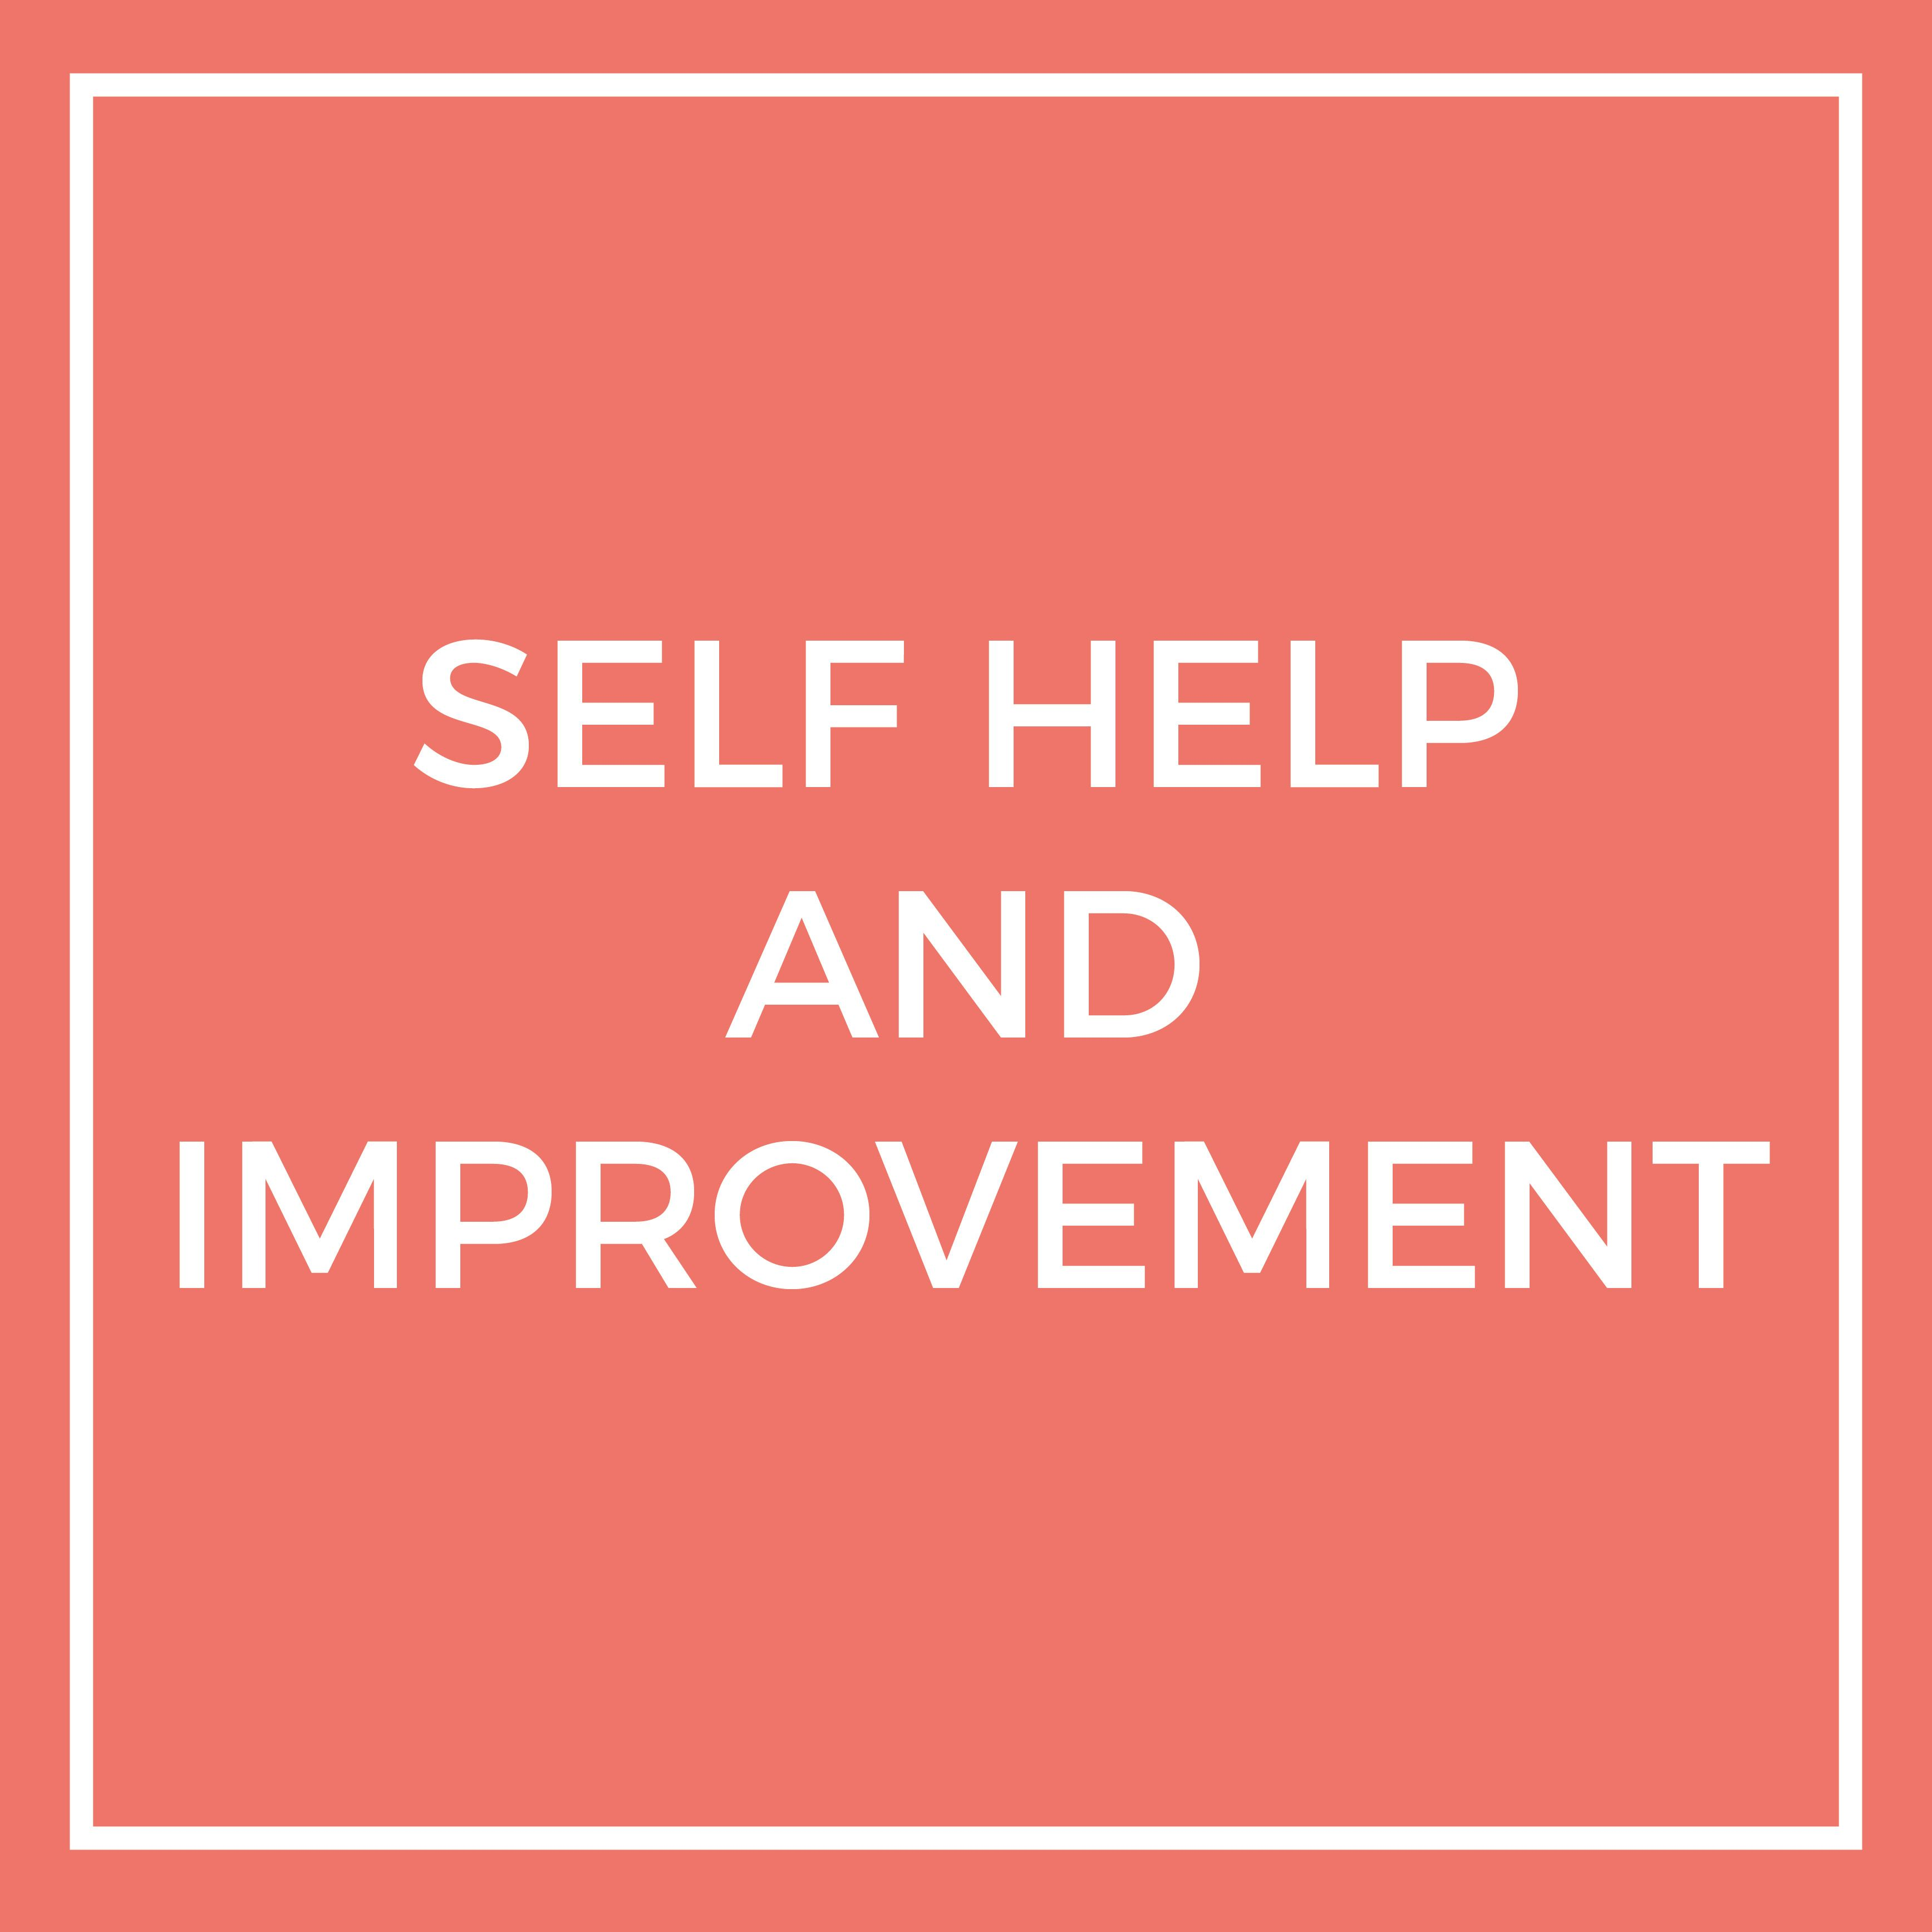 Board Banner For Self Help And Self Improvement Self Help Couples Therapist Self Improvement